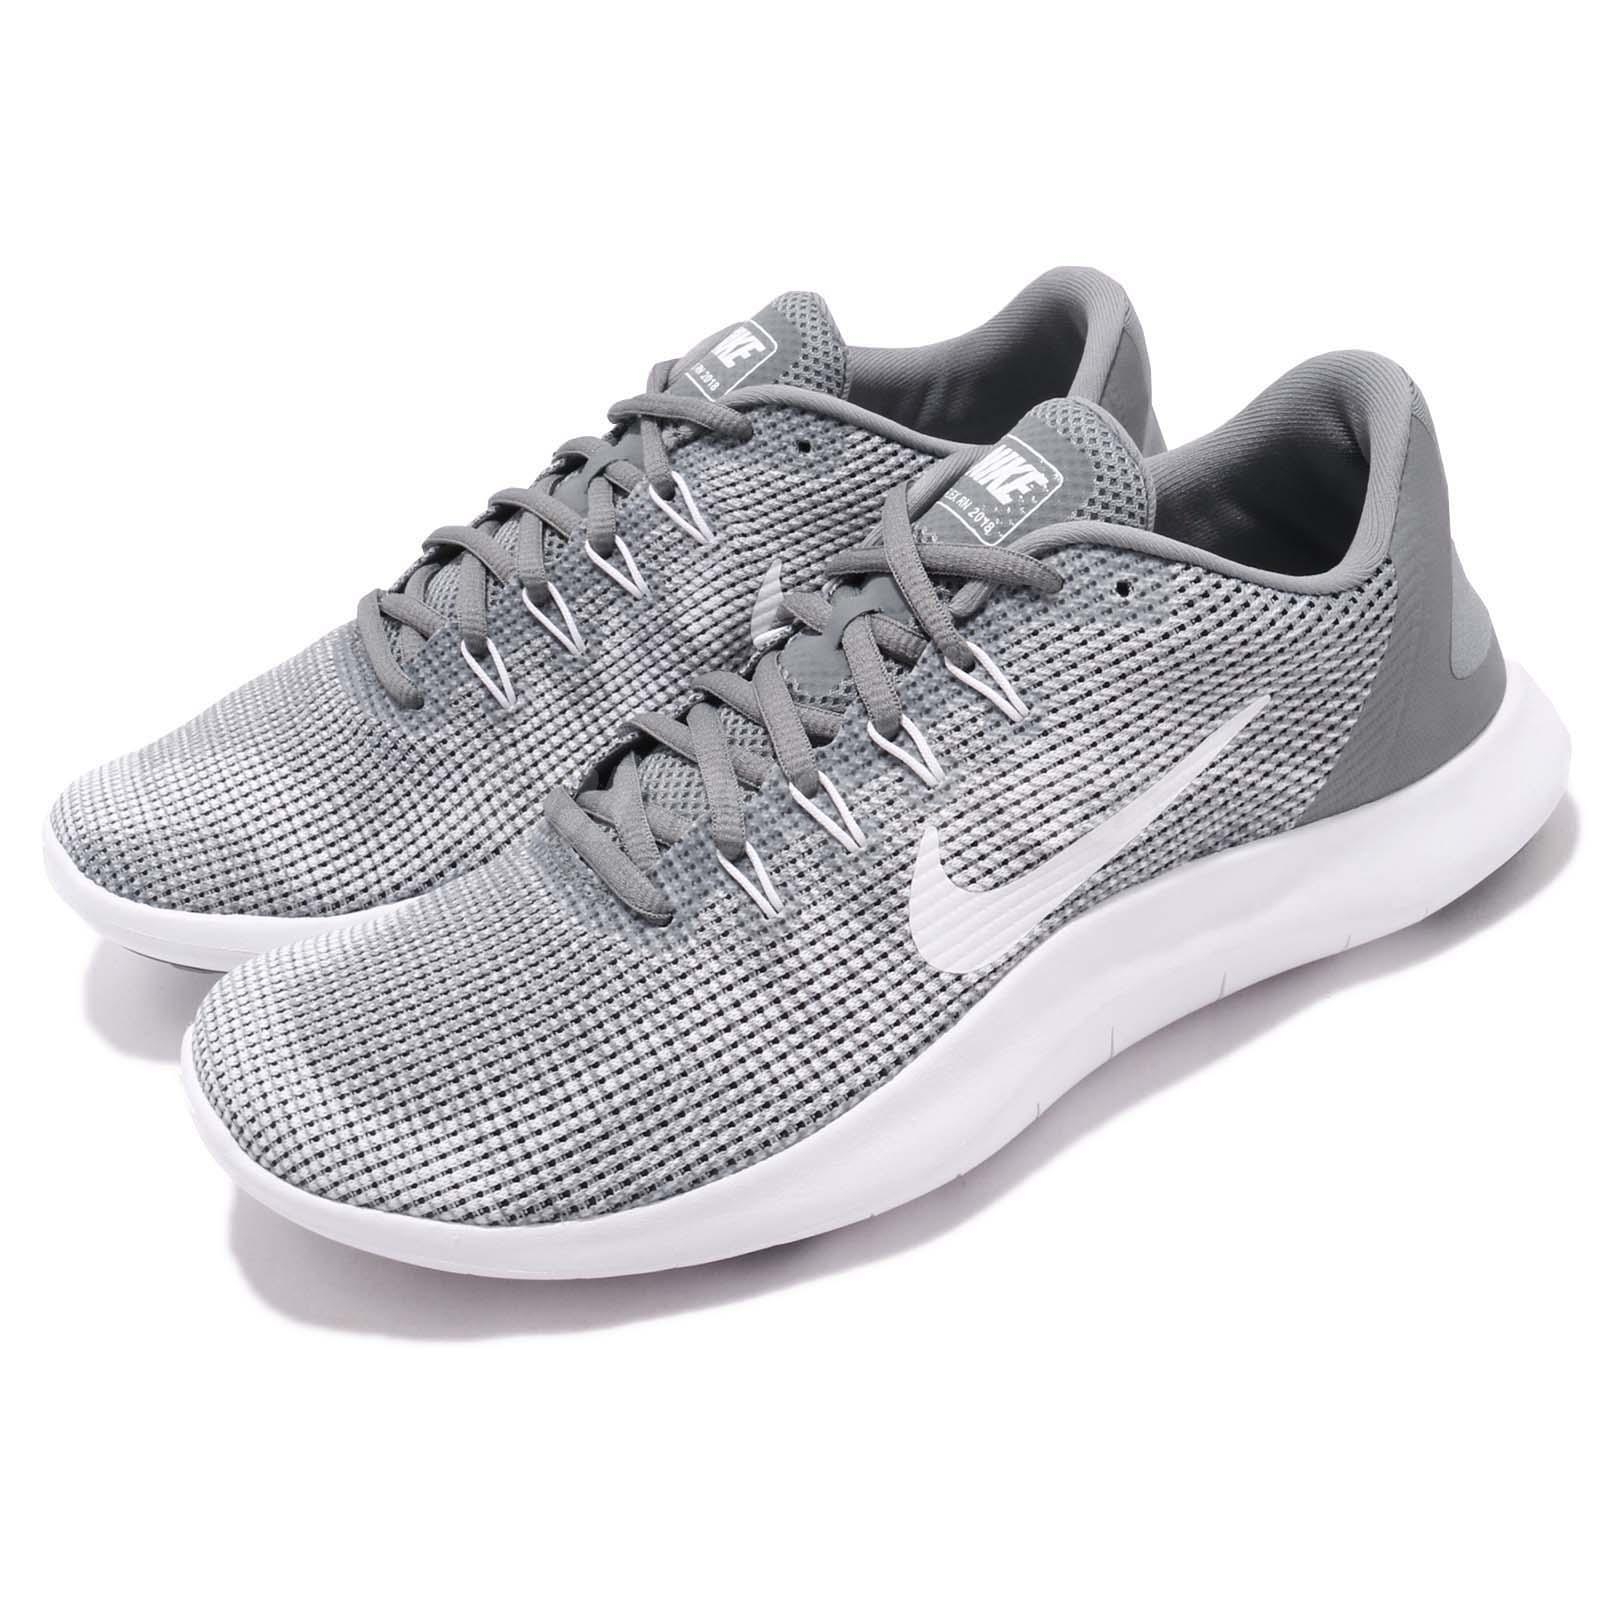 Nike Flex 2018 RN Grey Run White Men Running Shoes Sneakers AA7397-010